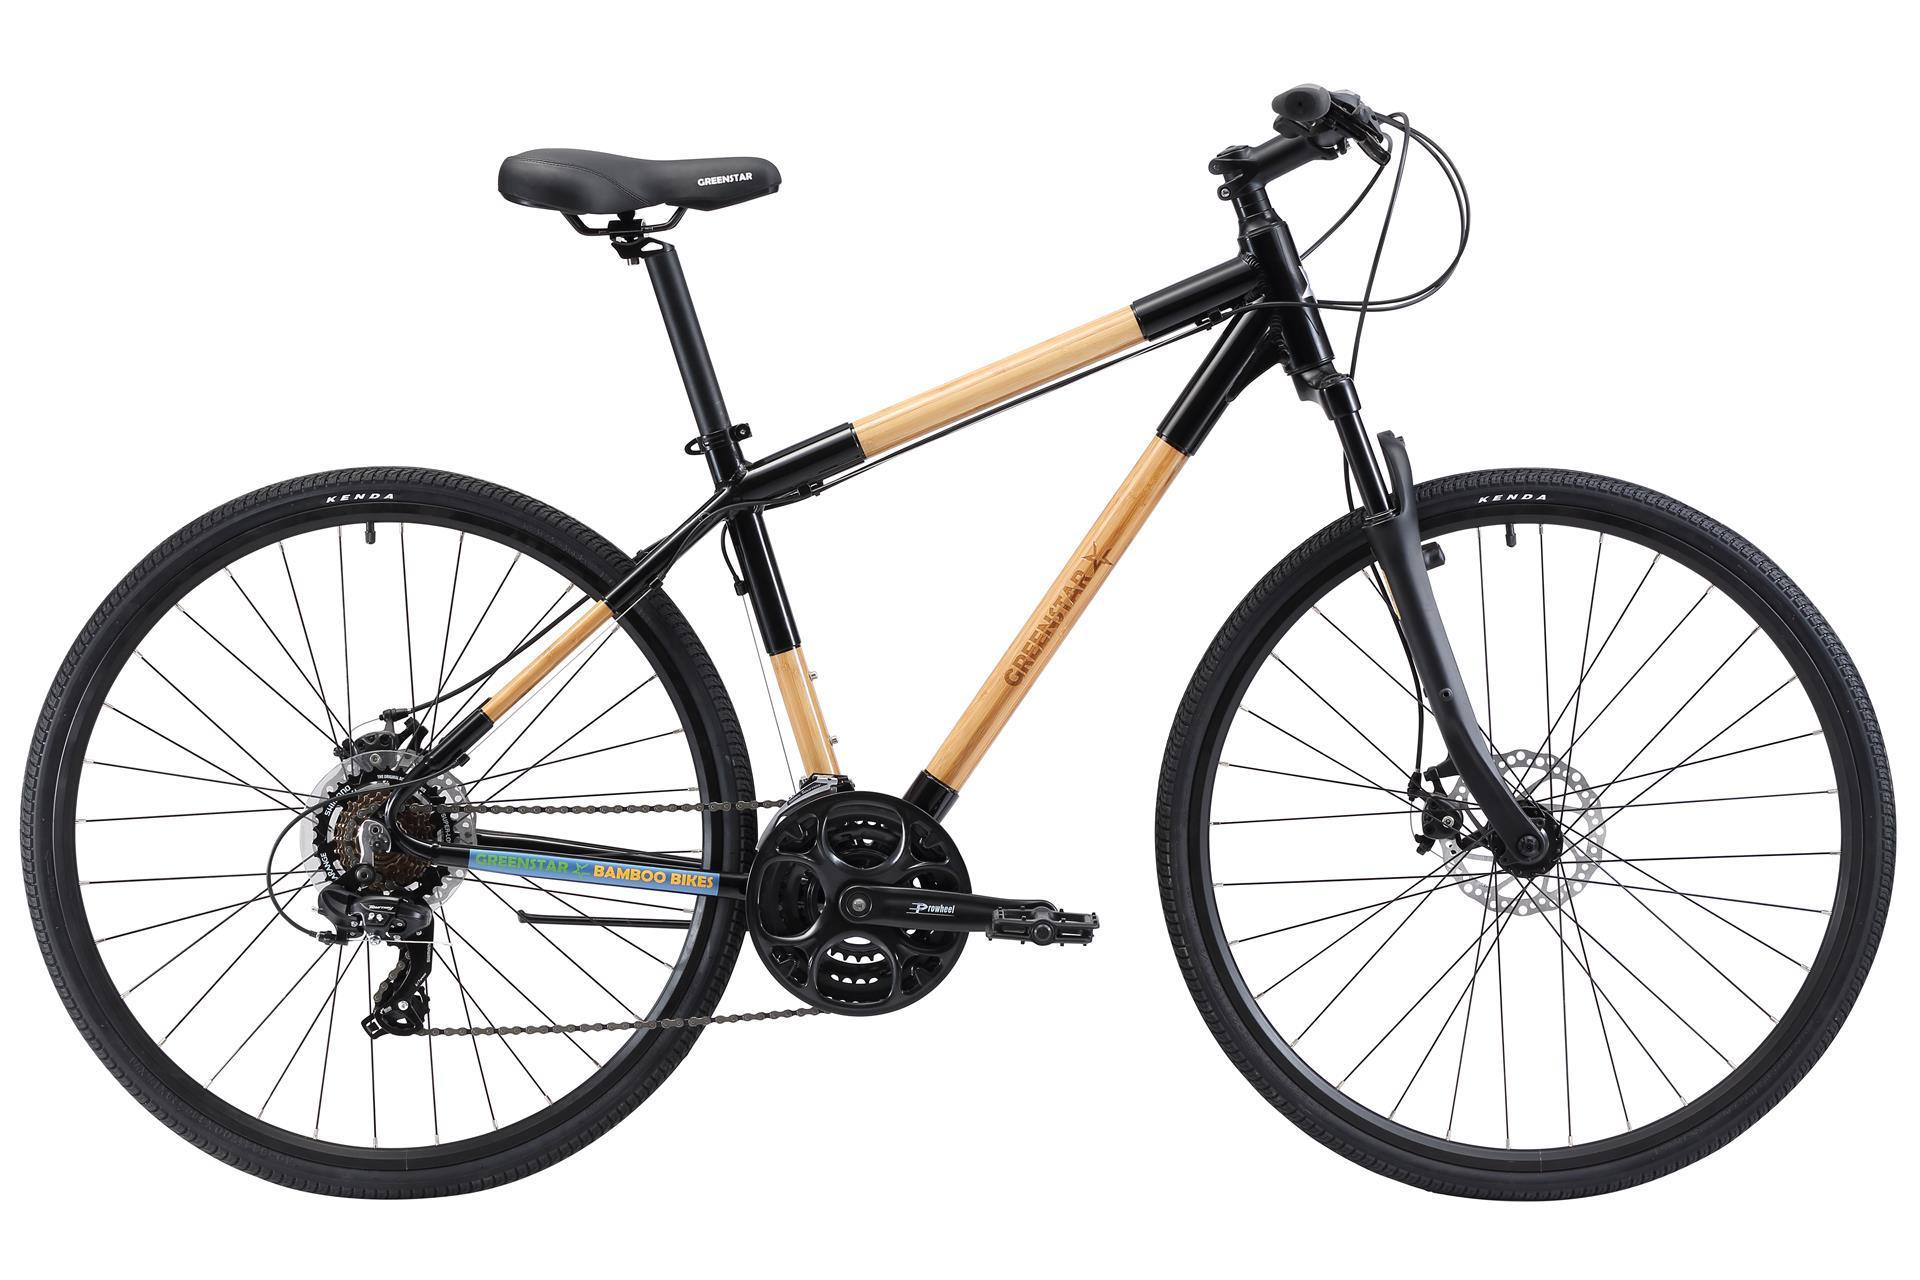 Eco Friendly Bamboo Bike - Hybrid Bicycle